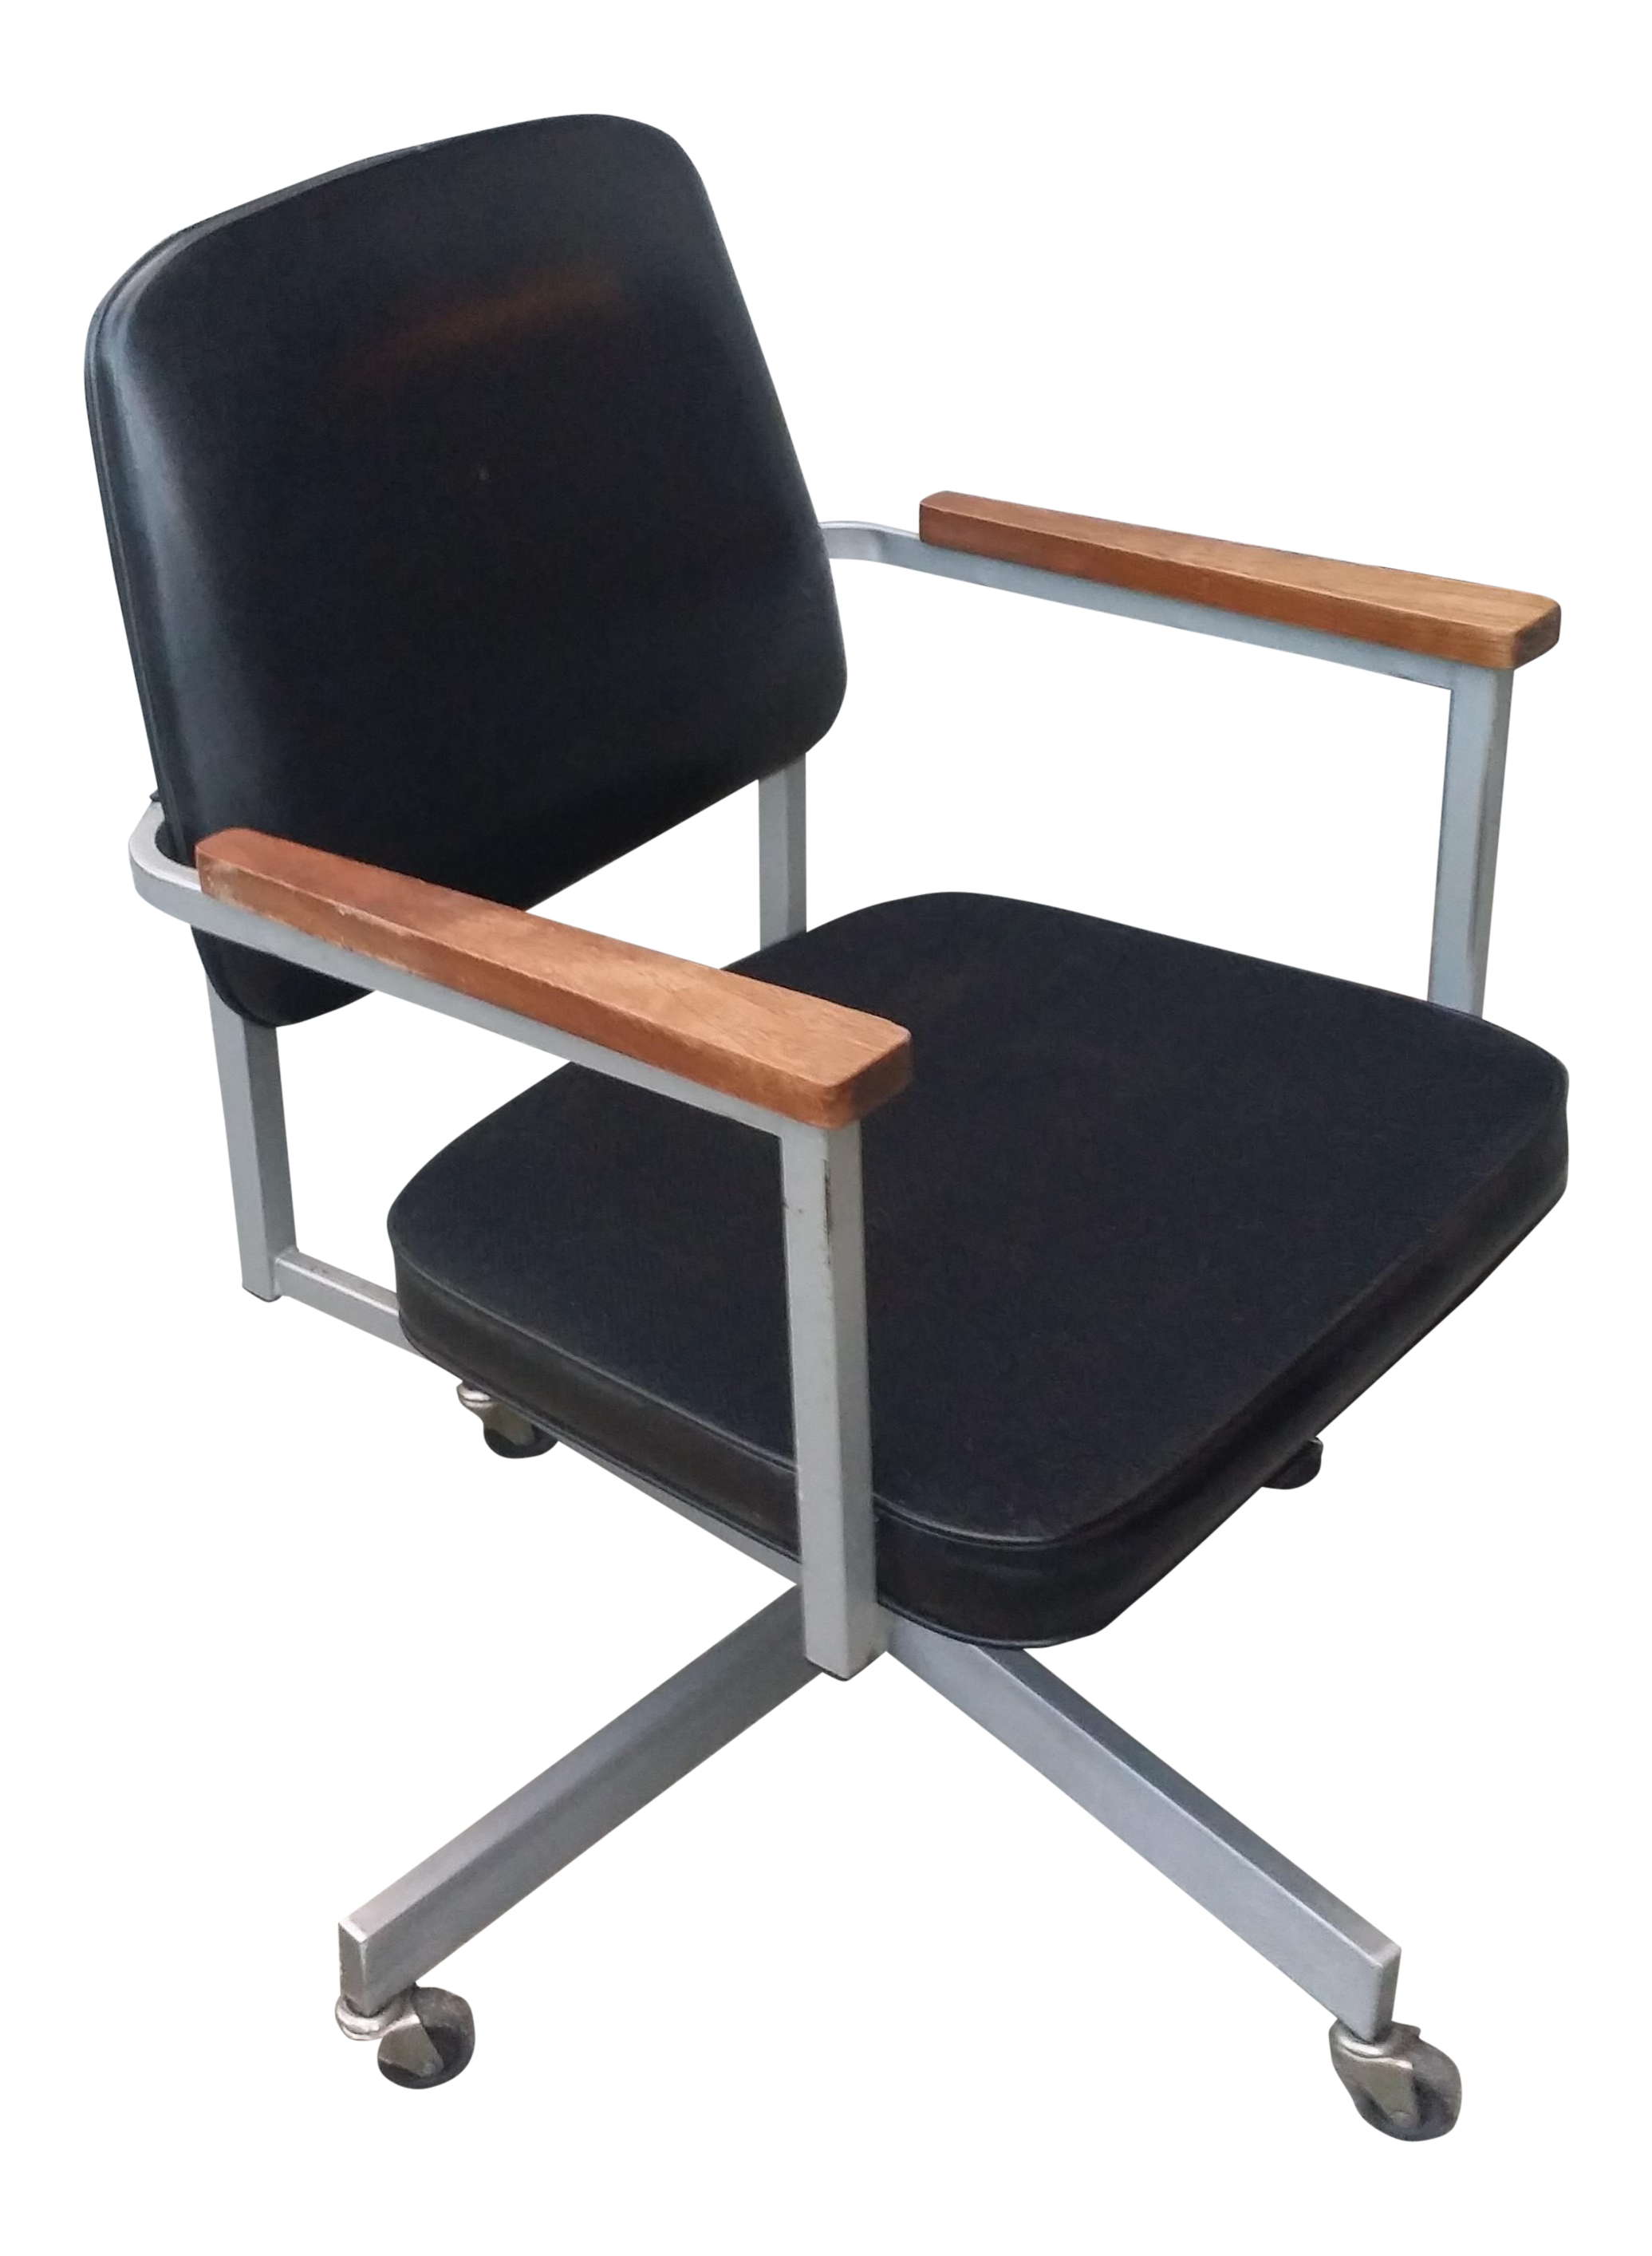 midcentury modern office chair - Gray Leather Office Chair